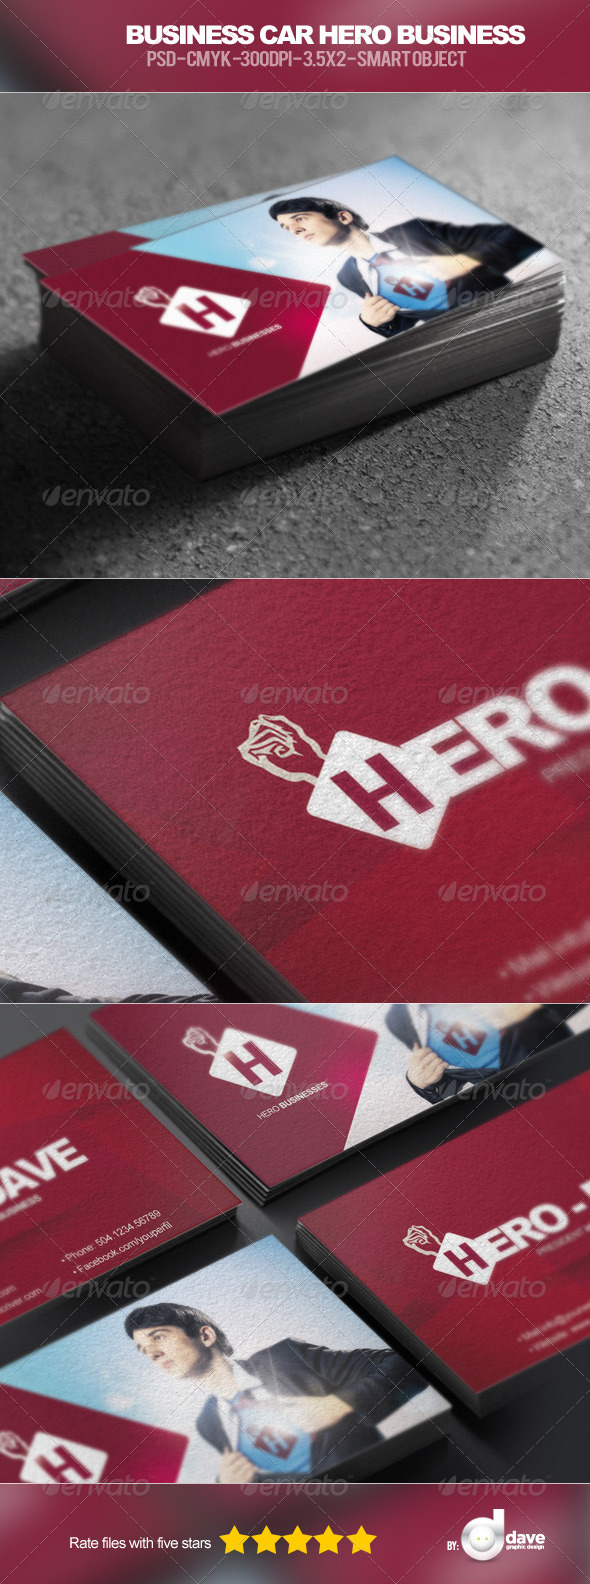 GraphicRiver Business Card Hero Businesses 5465912